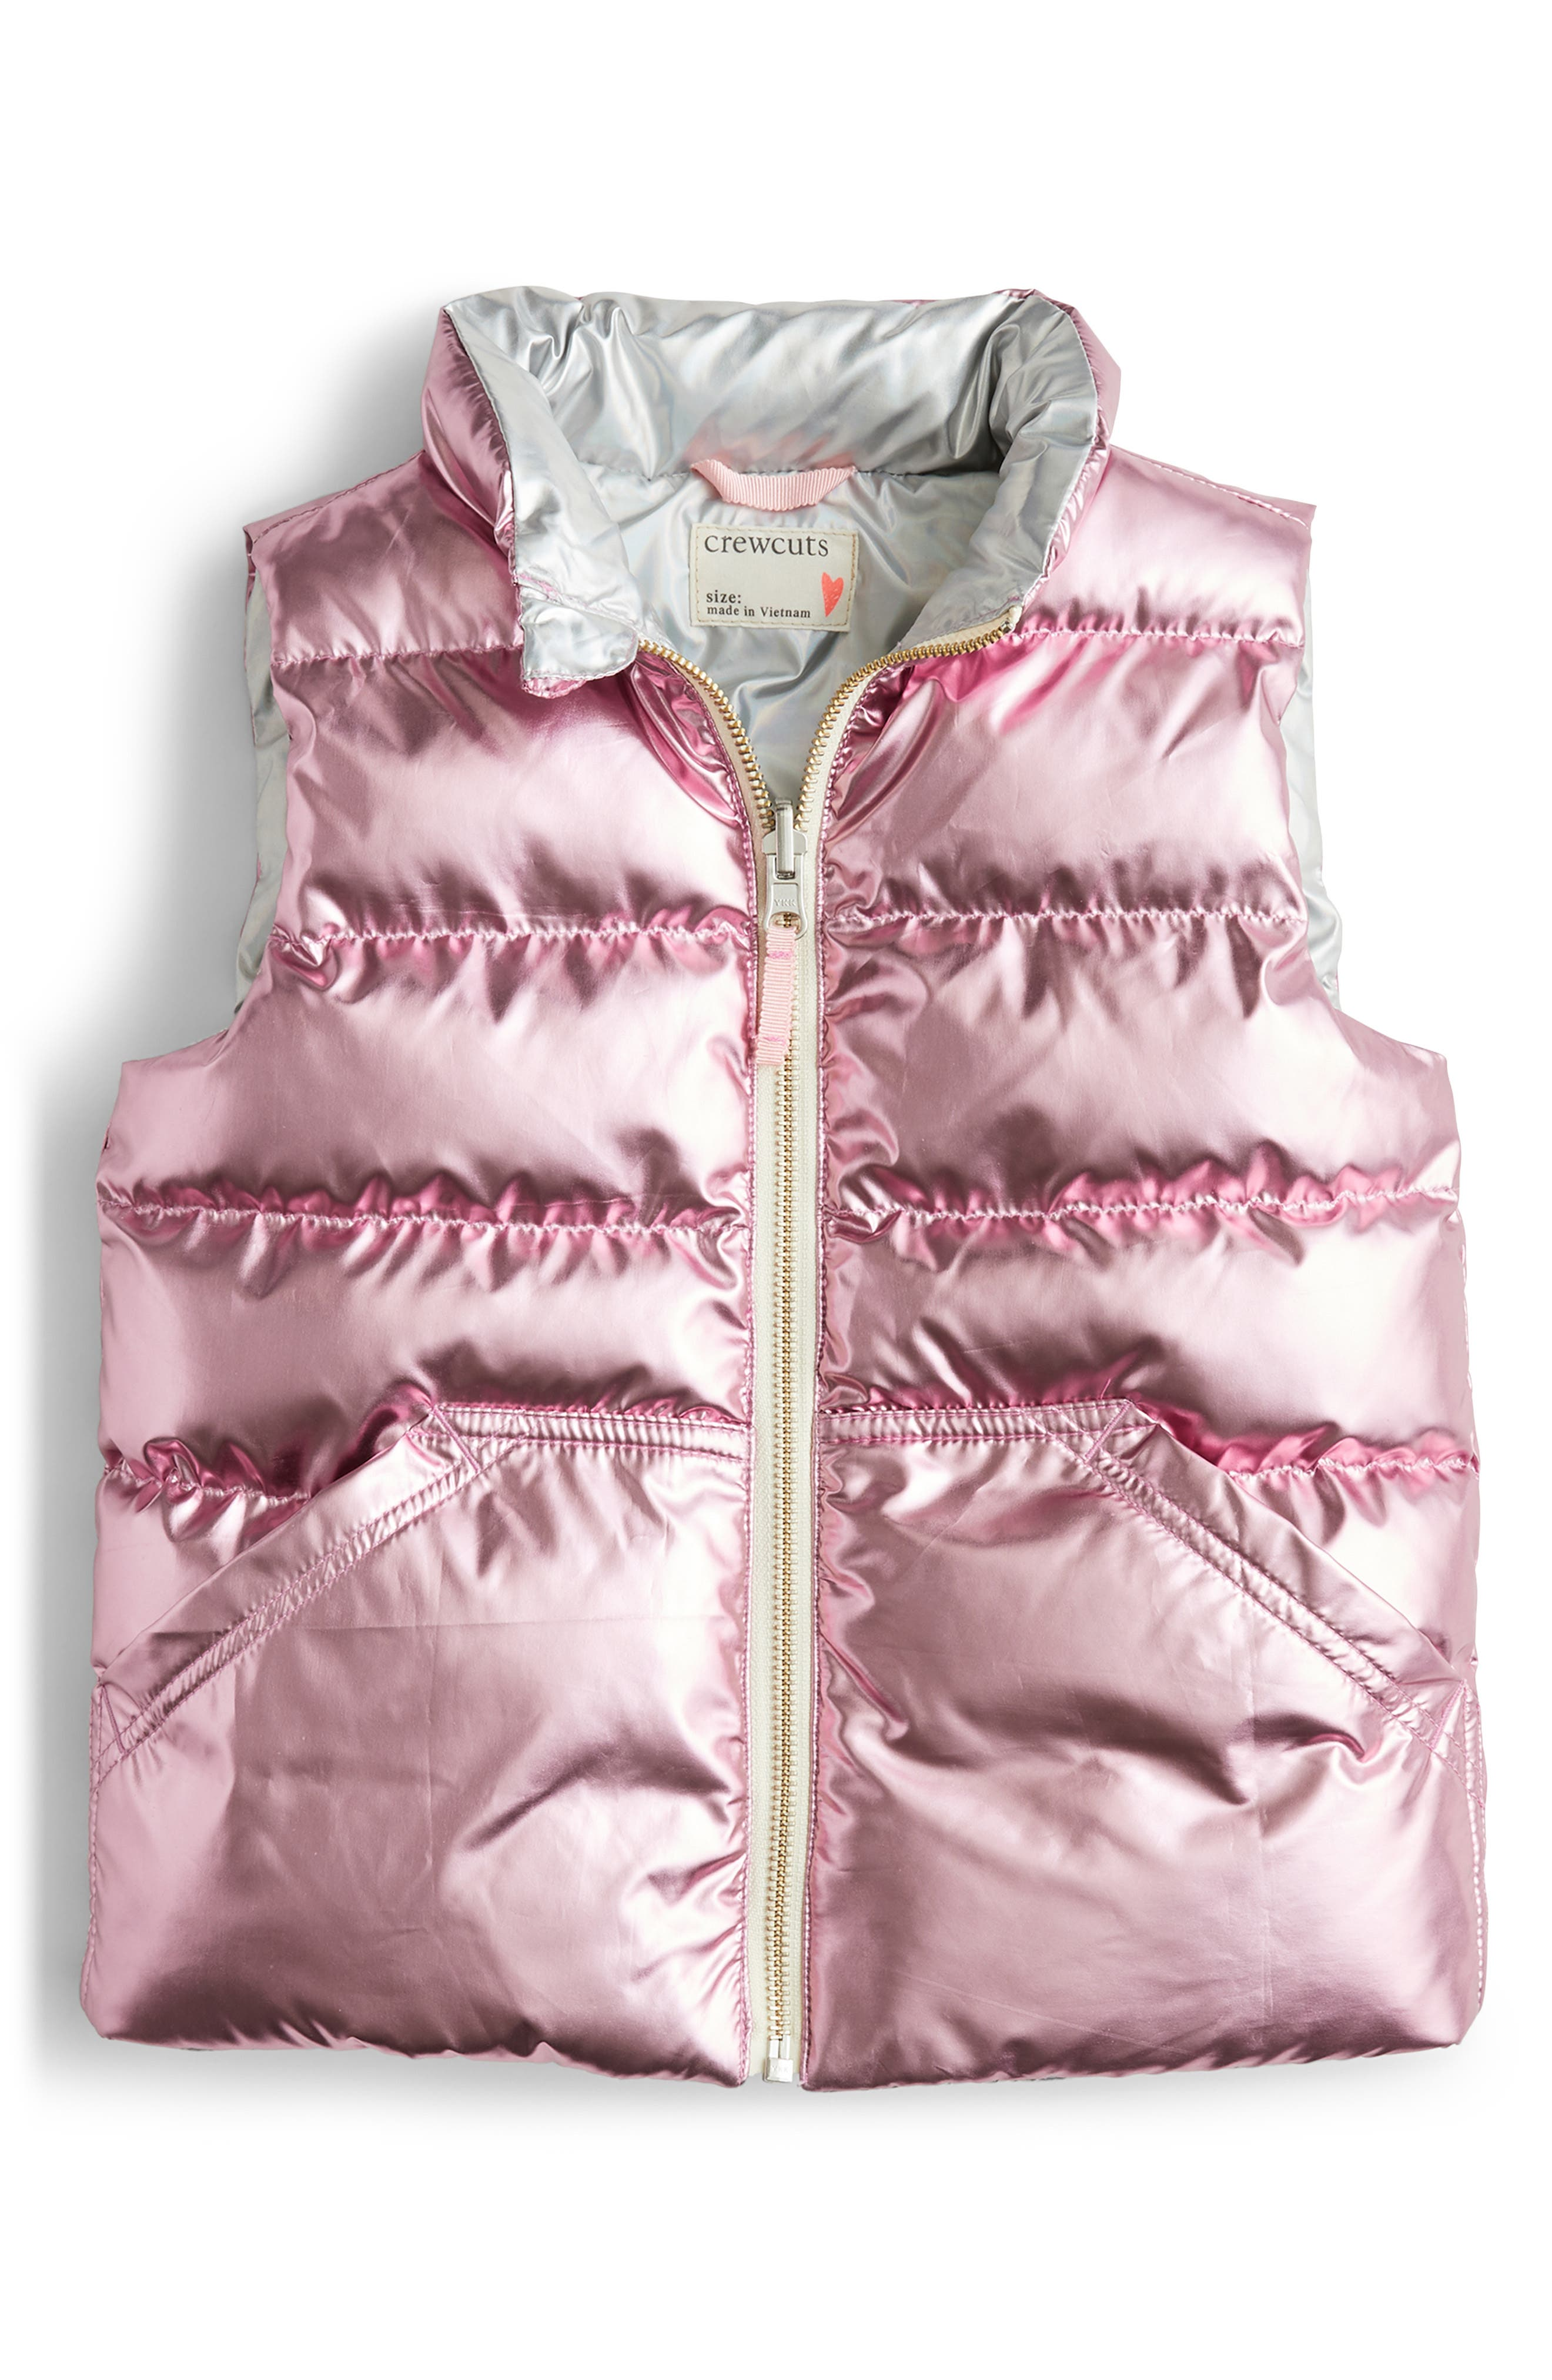 Toddler Girls Crewcuts By Jcrew Primaloft Metallic Quilted Puffer Vest Size 2T  Pink